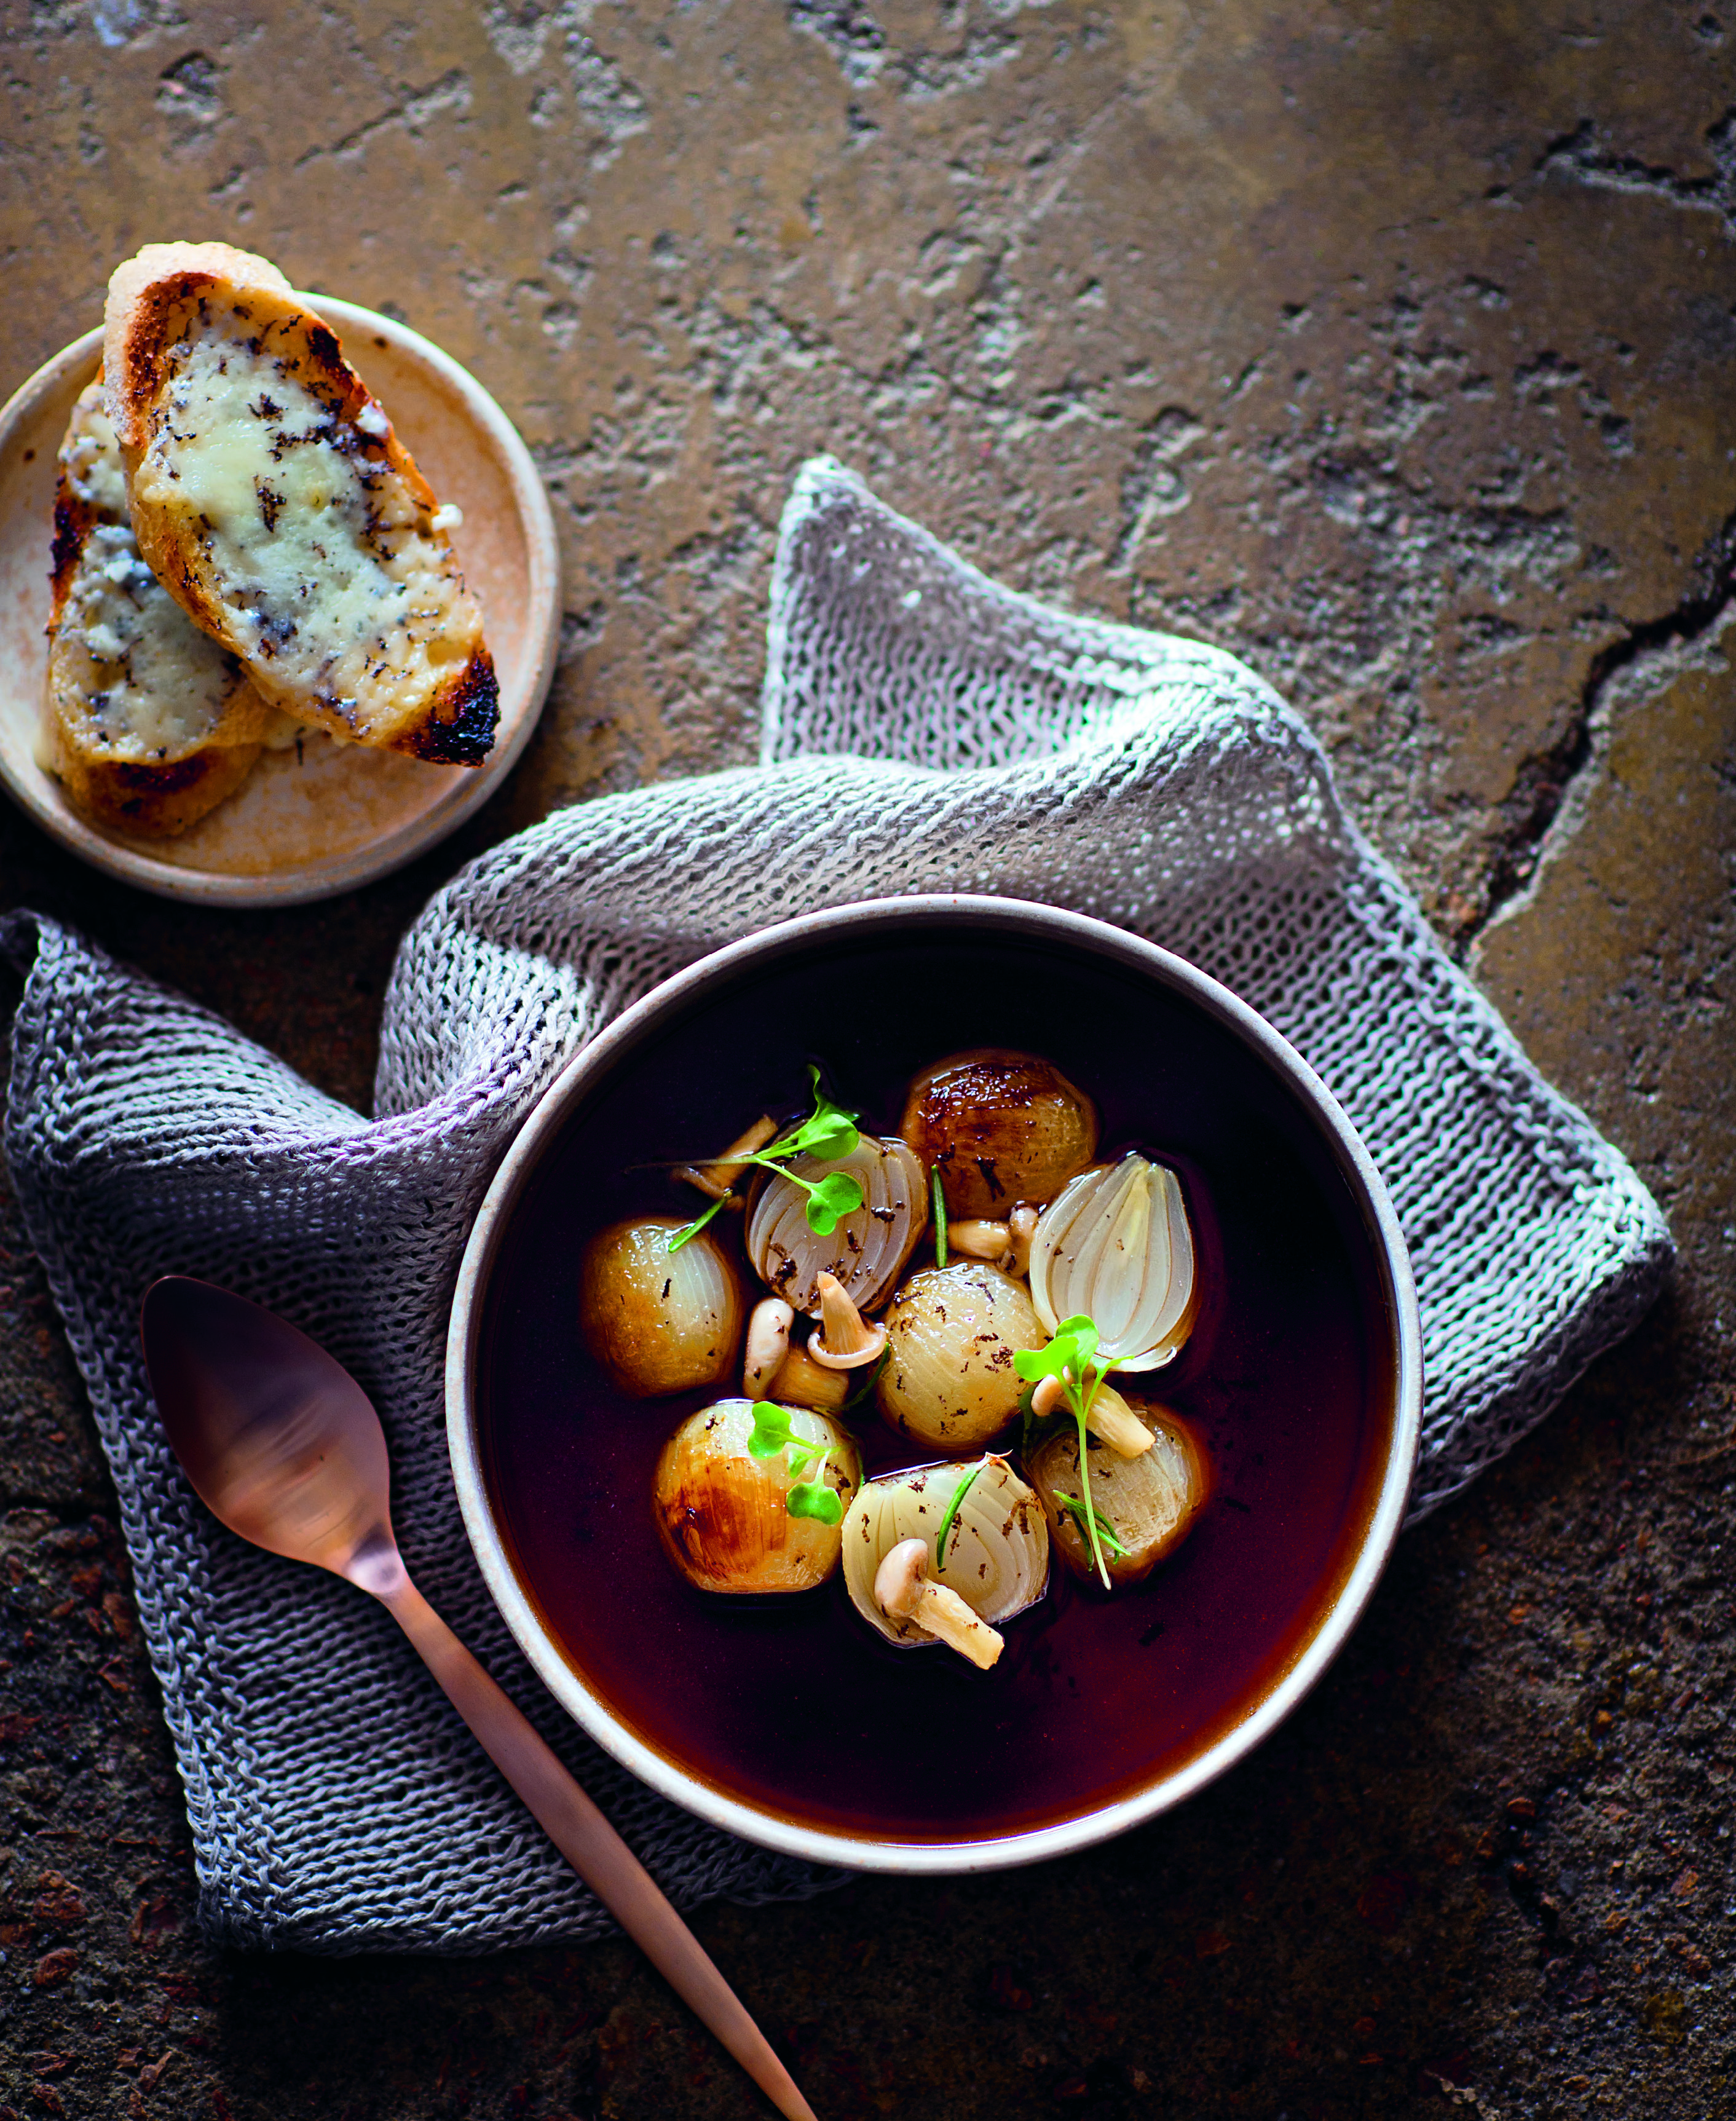 Mushroom consommé with slow-roasted baby onions and truffle toasts